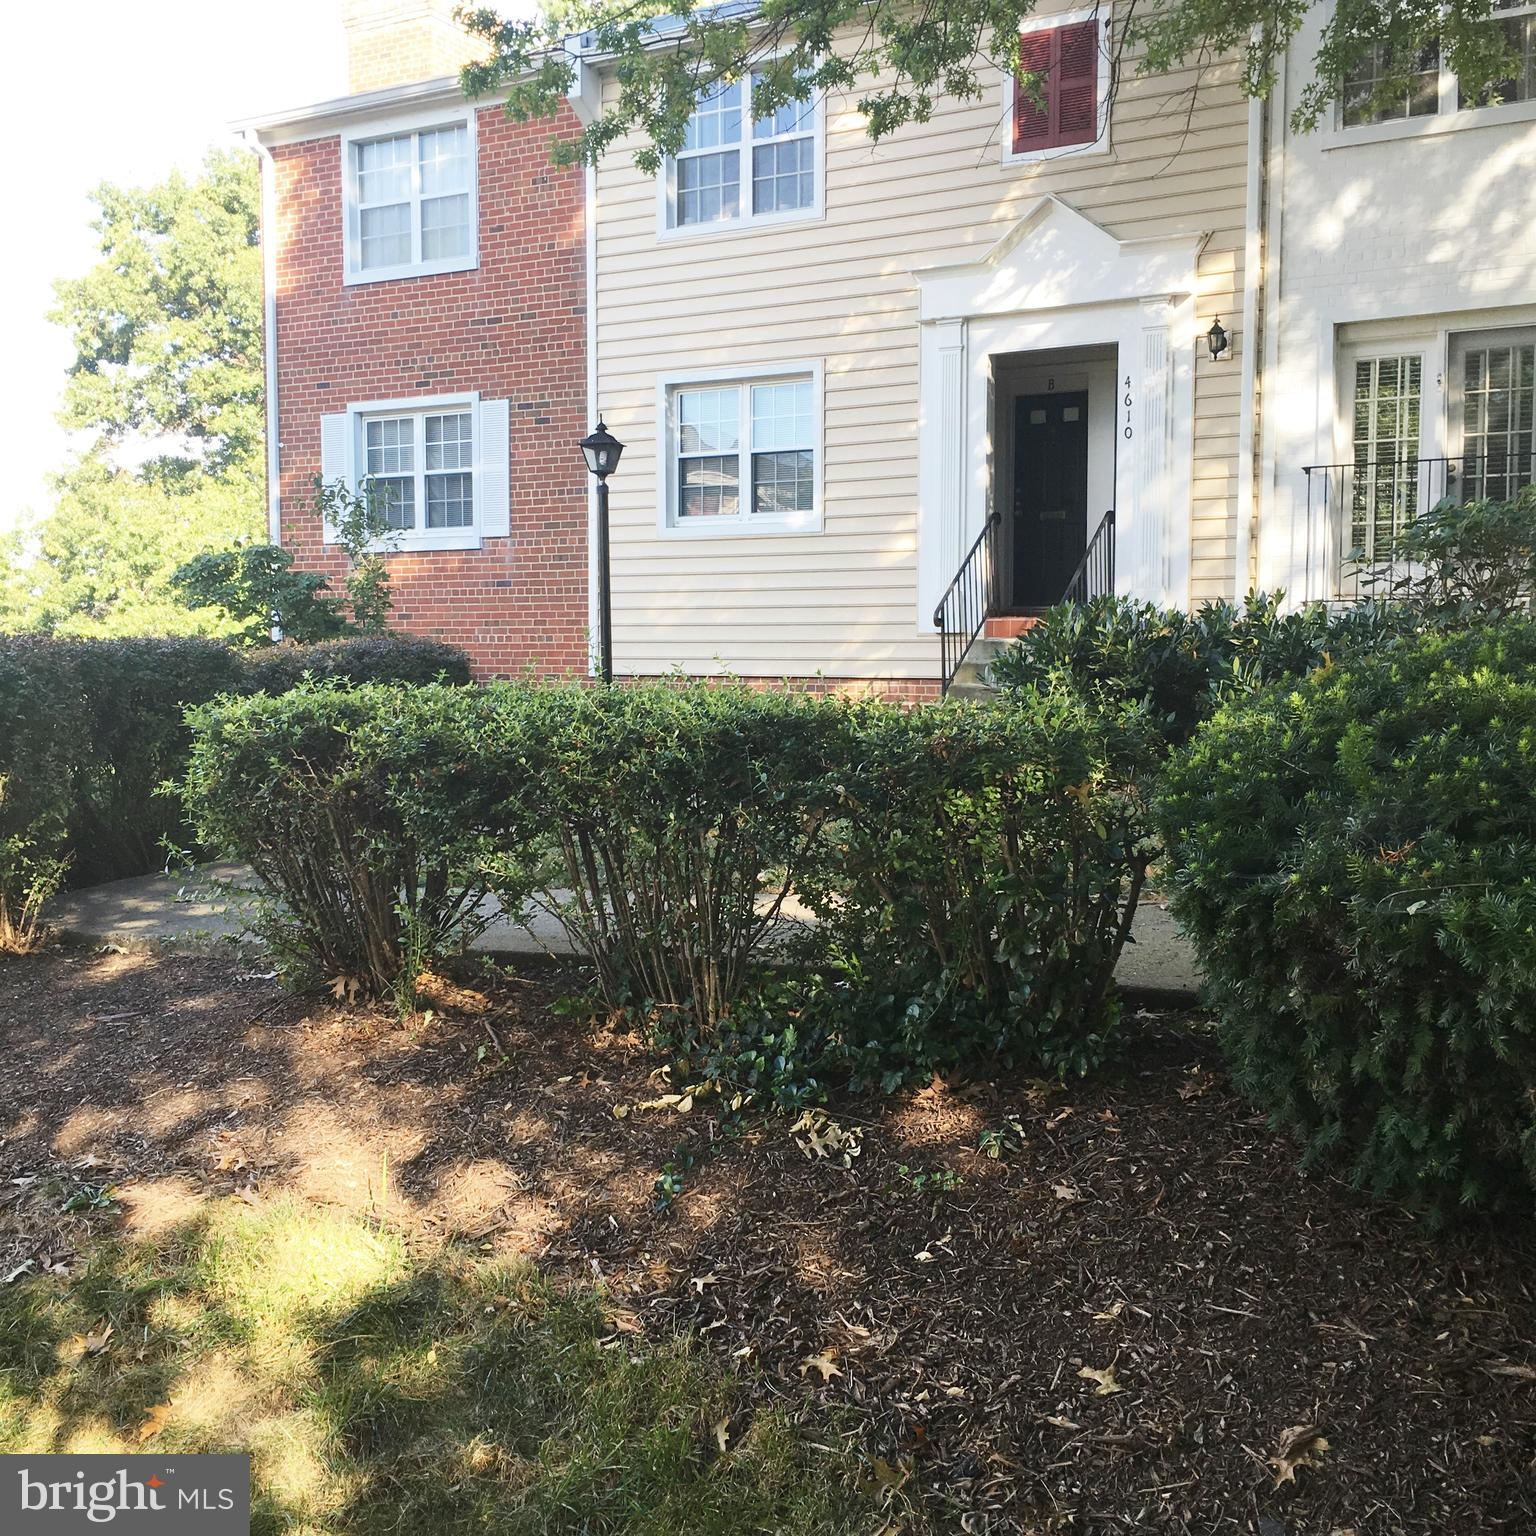 GREAT LOCATION! Nice 2BR/1BTH END UNIT (GIVING YOU THREE SIDES OF WINDOWS) with wonderful patio and elevated for privacy. Walk to Shirlington, restaurants, shopping, bike paths, dog park. Pergo floors, updated windows, appliances, and tile floors in kitchen and bath. New Mirrored Closet Doors. Short Bus Ride to PENTAGON METRO.